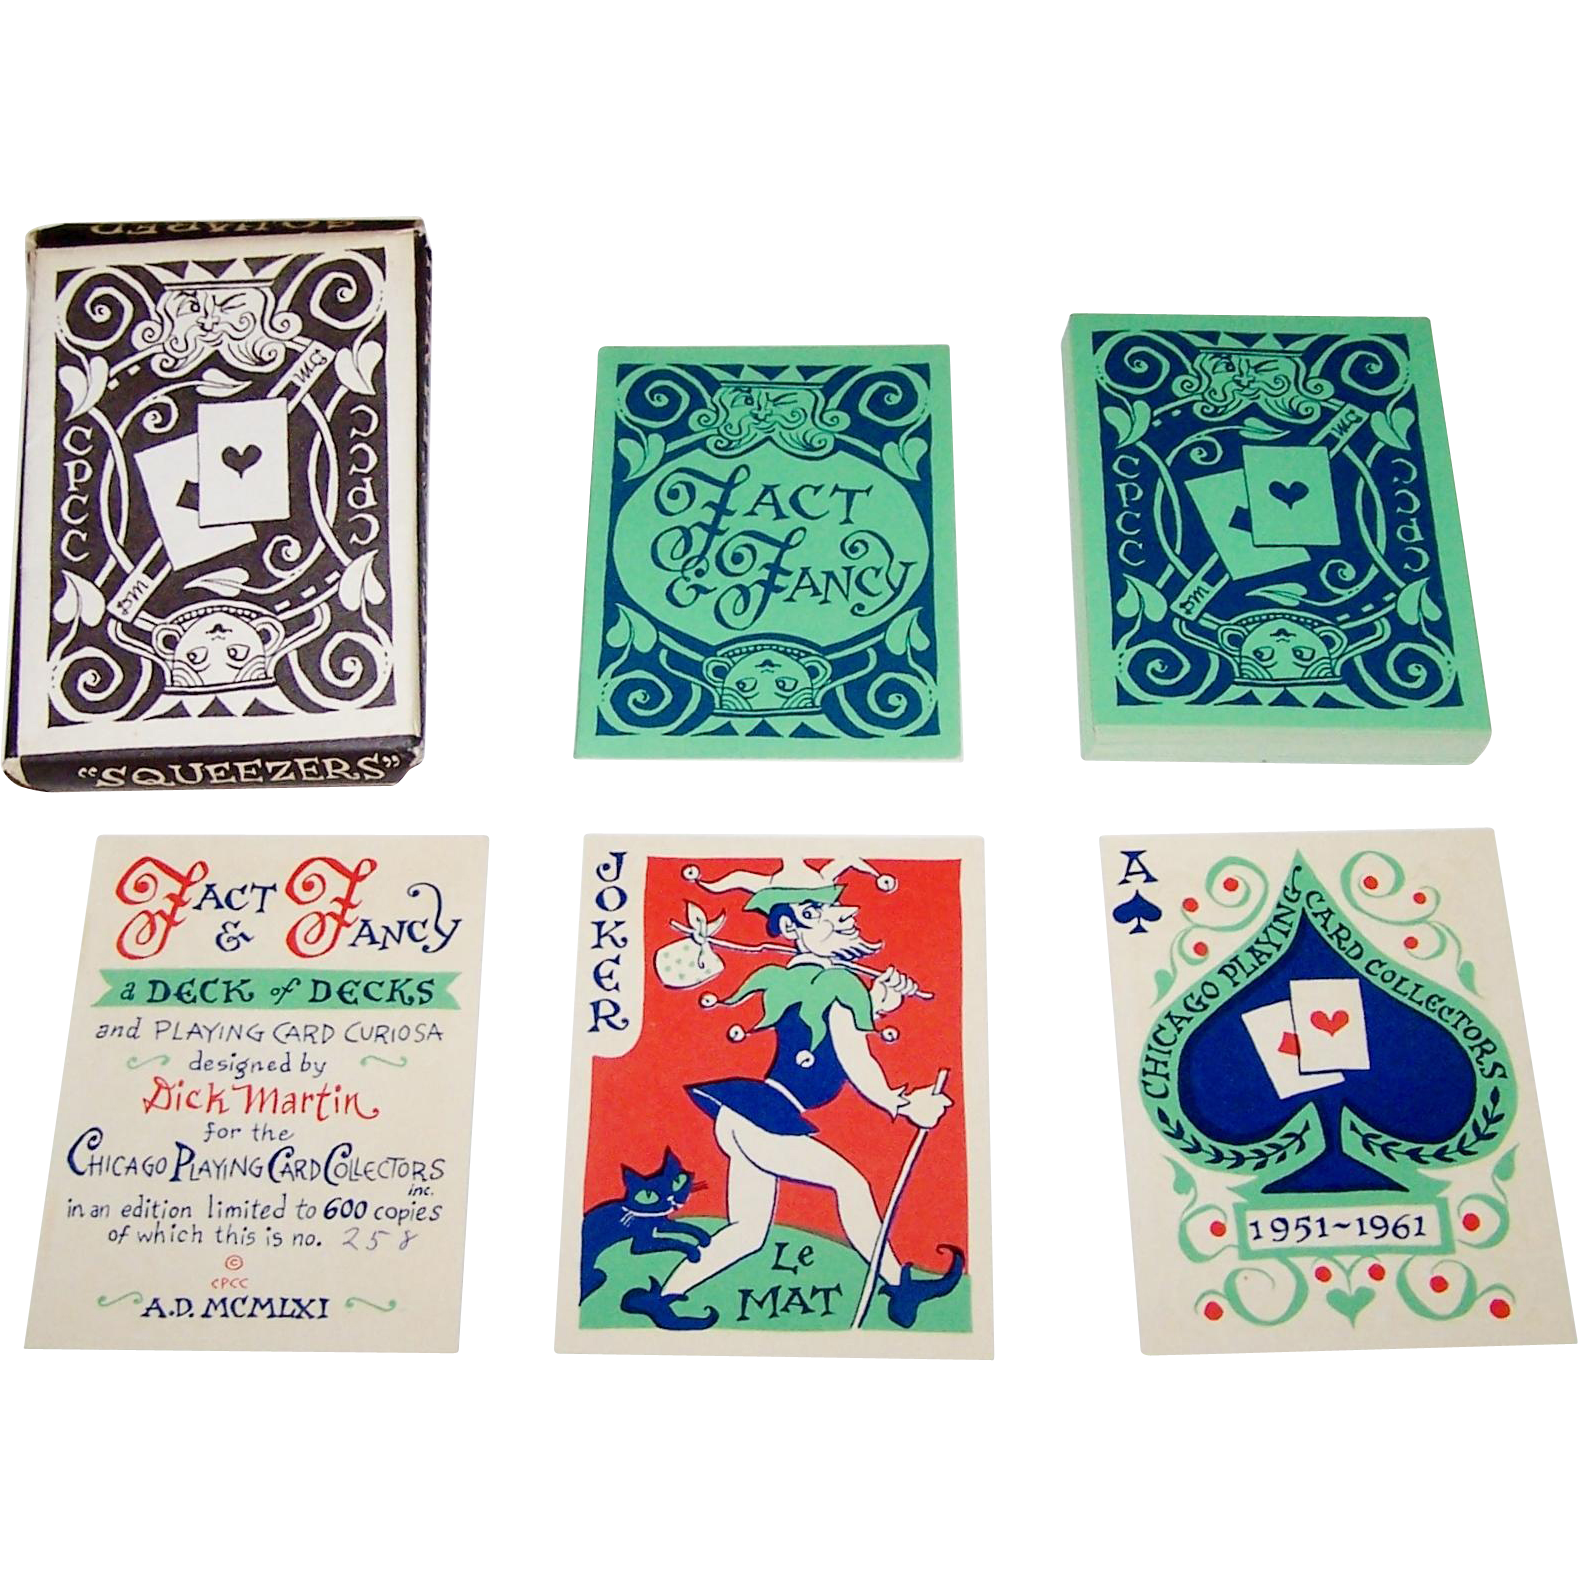 "Chicago Playing Card Collectors ""Fact & Fancy"" Playing Cards, Limited Edition (258/600), Dick Martin Designs, c.1961"